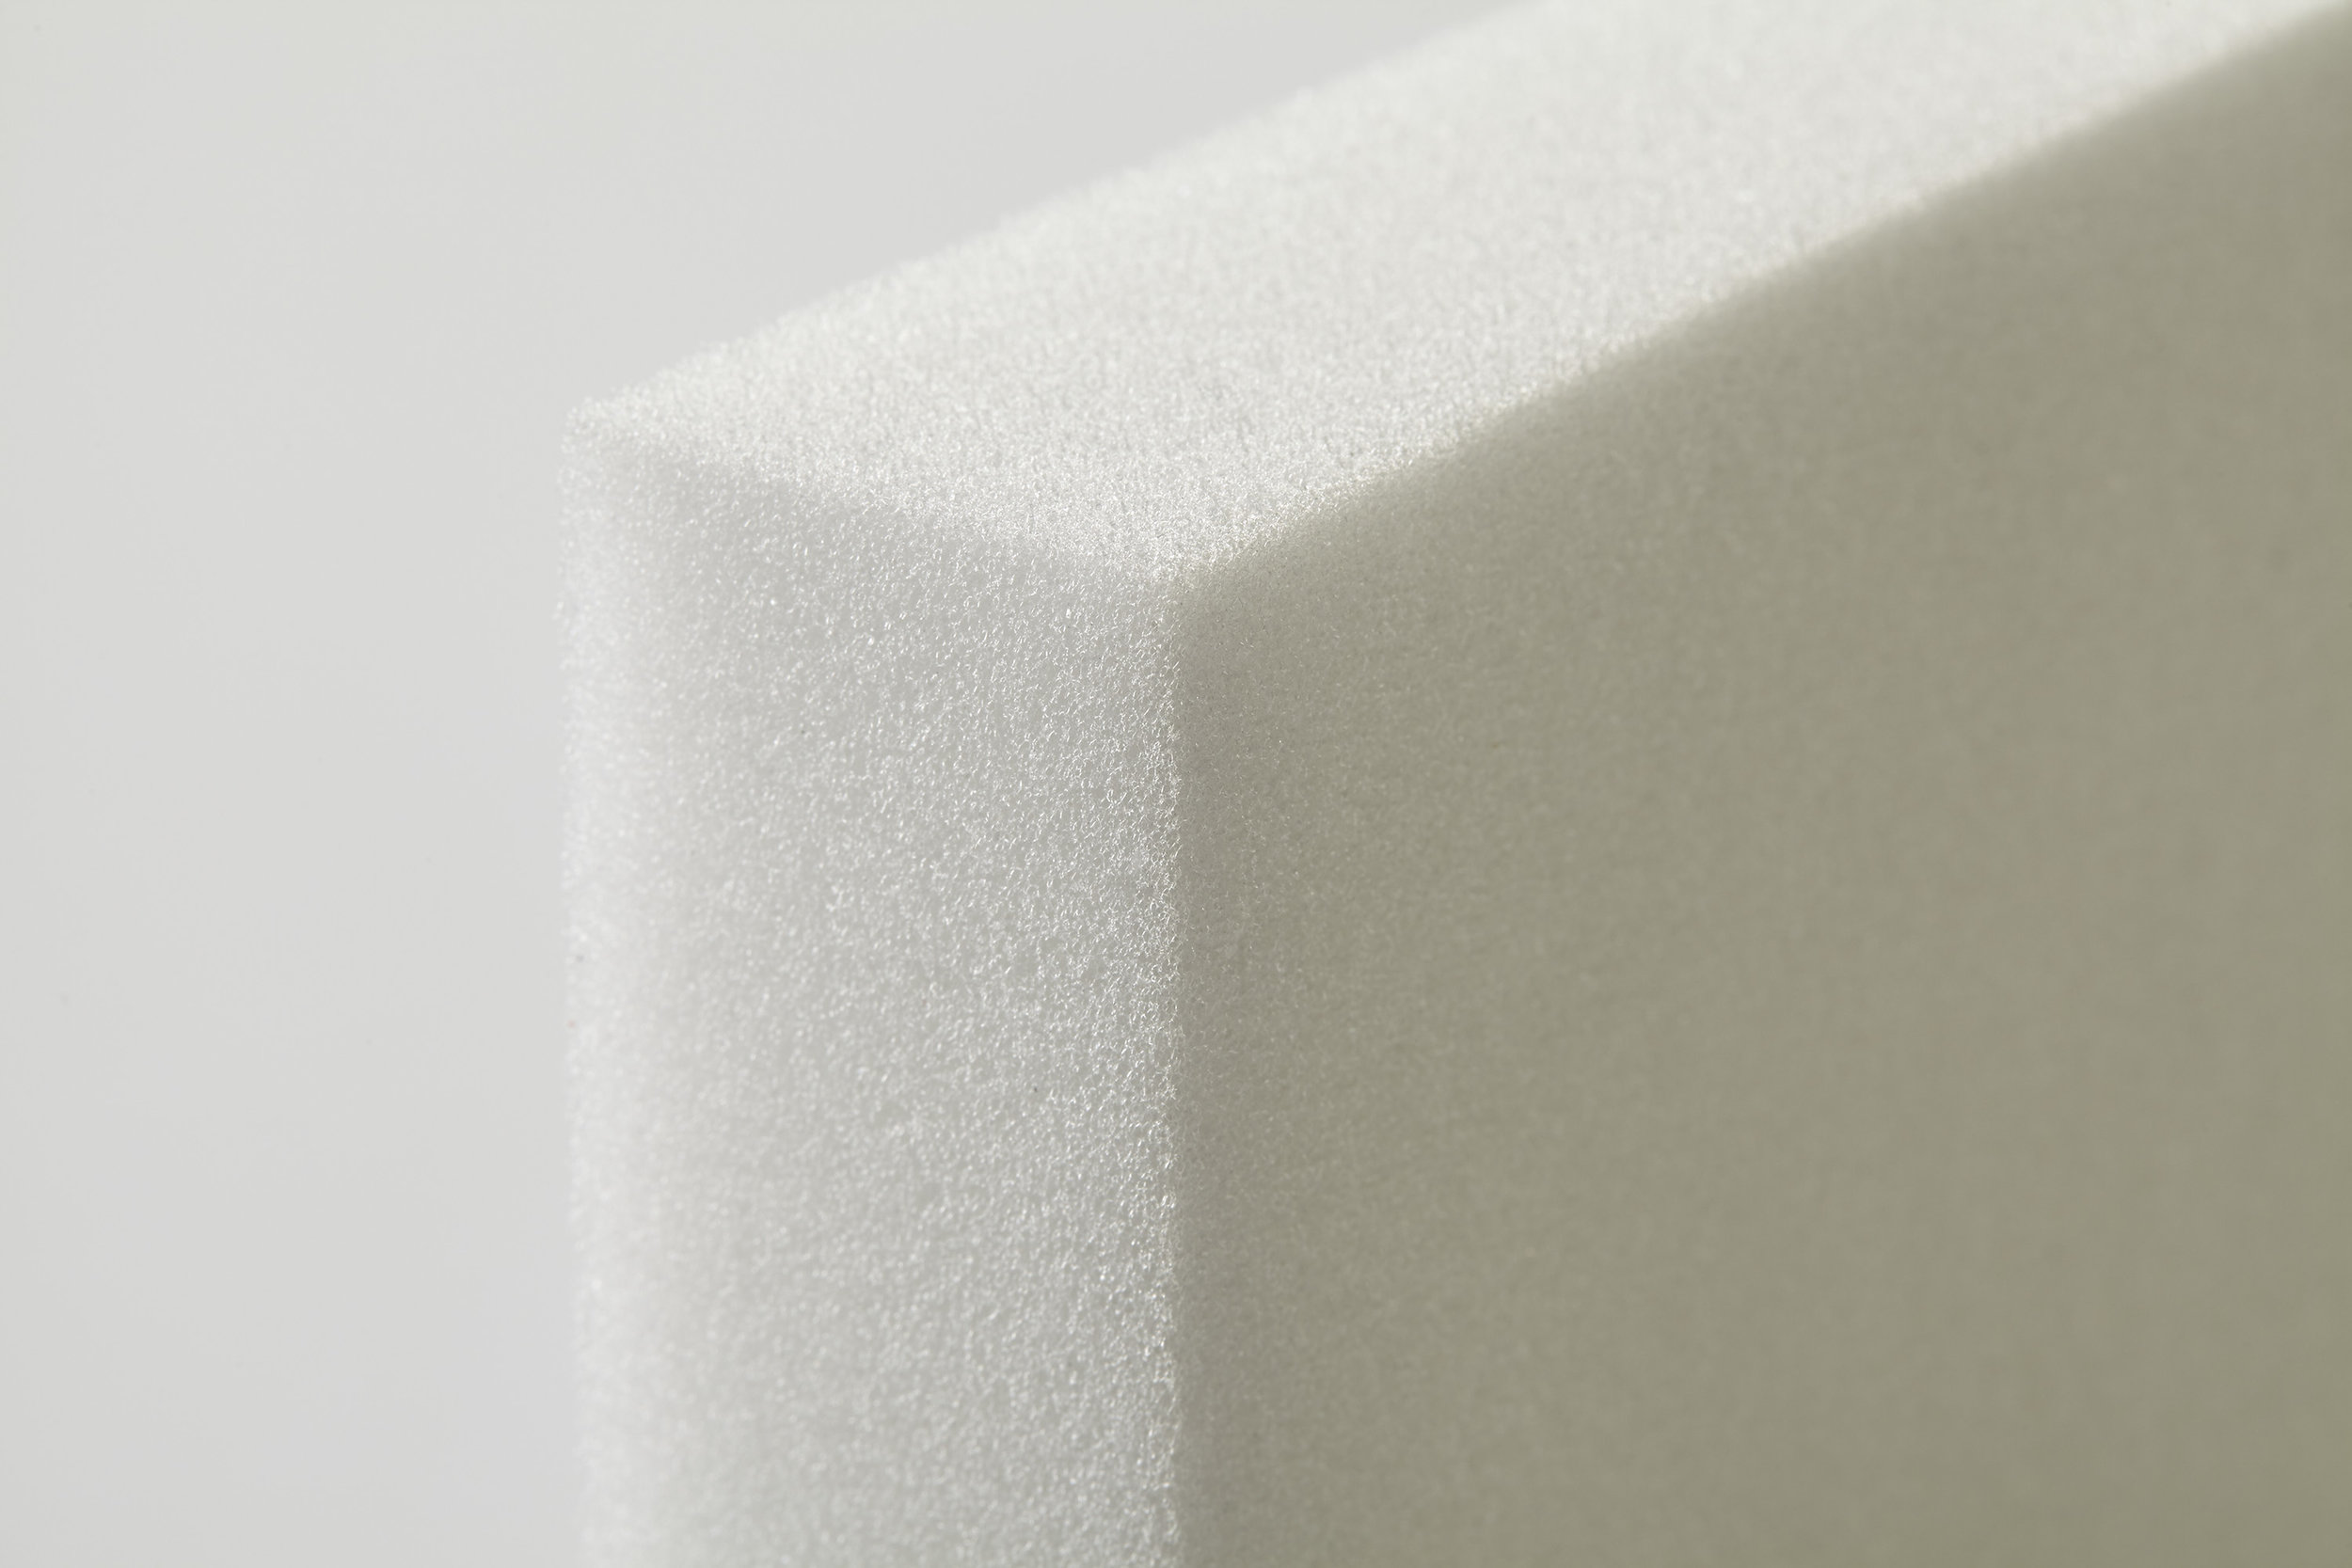 SEAT MAX - A better, higher-density foam option that presents an upgrade in durability, resulting in a longer life-span for your cushions.• Density: 1.8 lbs/cubic ft. • Firmness options: Soft, Medium, and Firm.• Pricing: $1.61/board foot.